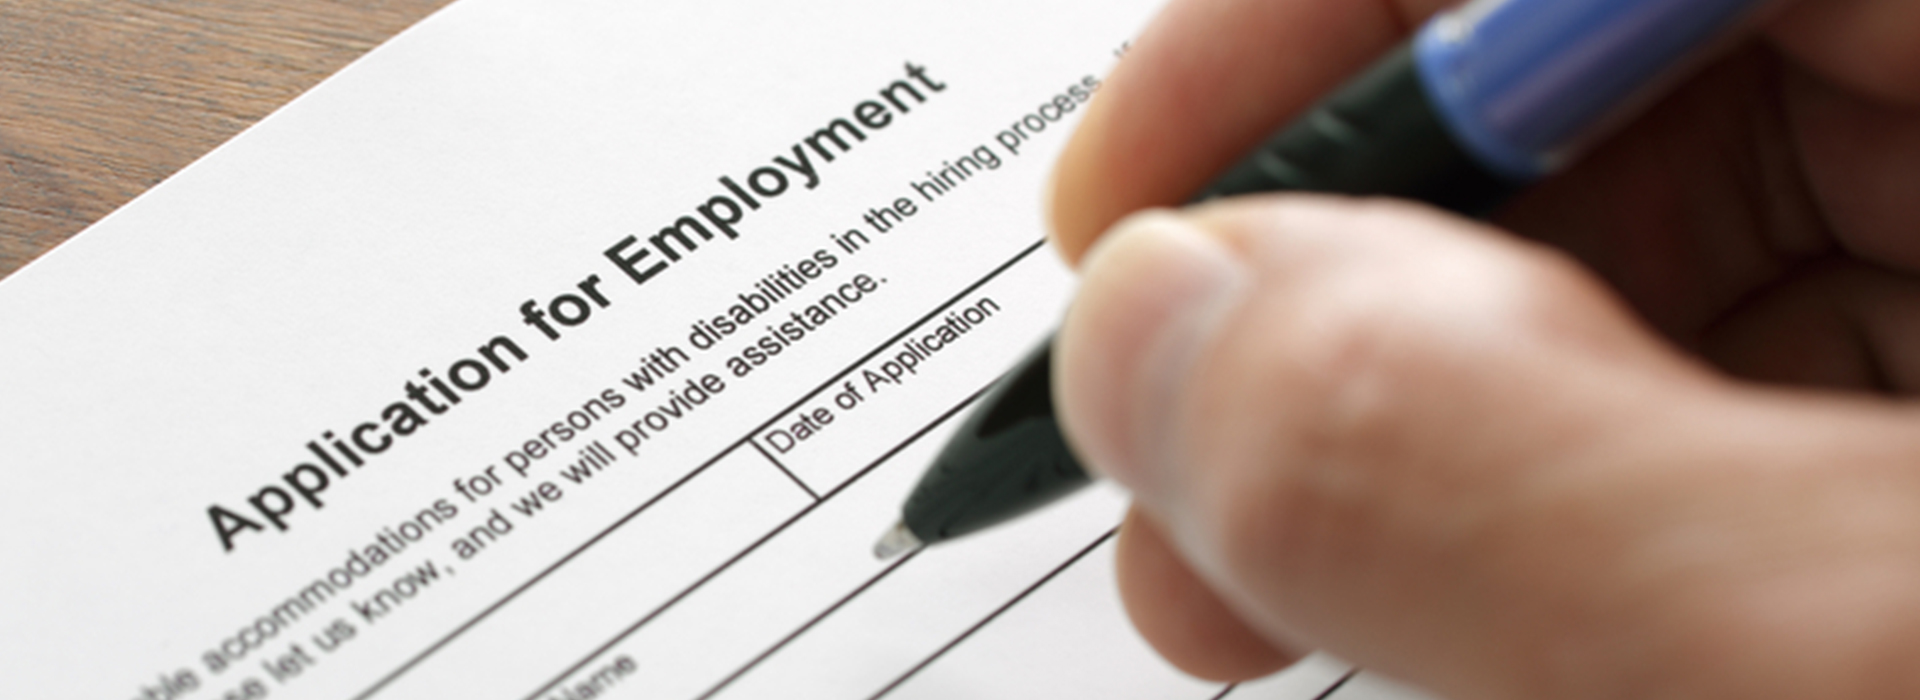 CSUSB Project Rebound will host 'Fair Chance Act: Employer Training' March 3 on campus